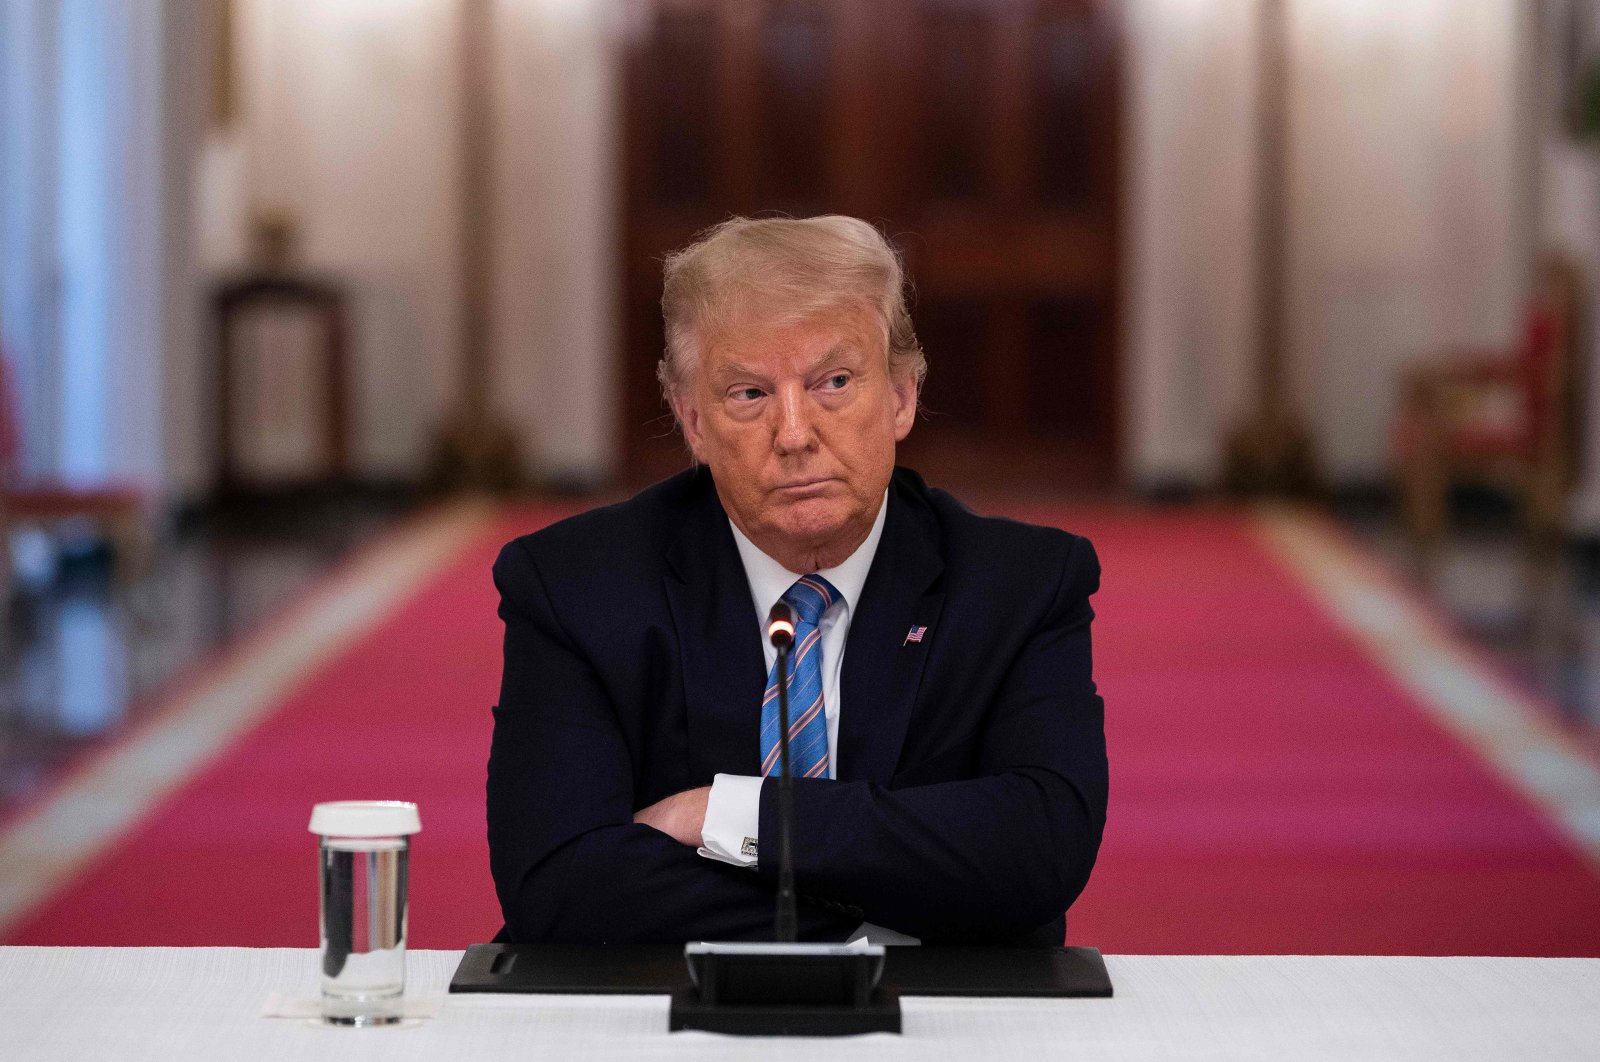 U.S. President Donald Trump sits with his arms crossed during a roundtable discussion on the Safe Reopening of America's Schools during the coronavirus pandemic, in the East Room of the White House in Washington, D.C. on July 7, 2020. (AFP Photo)